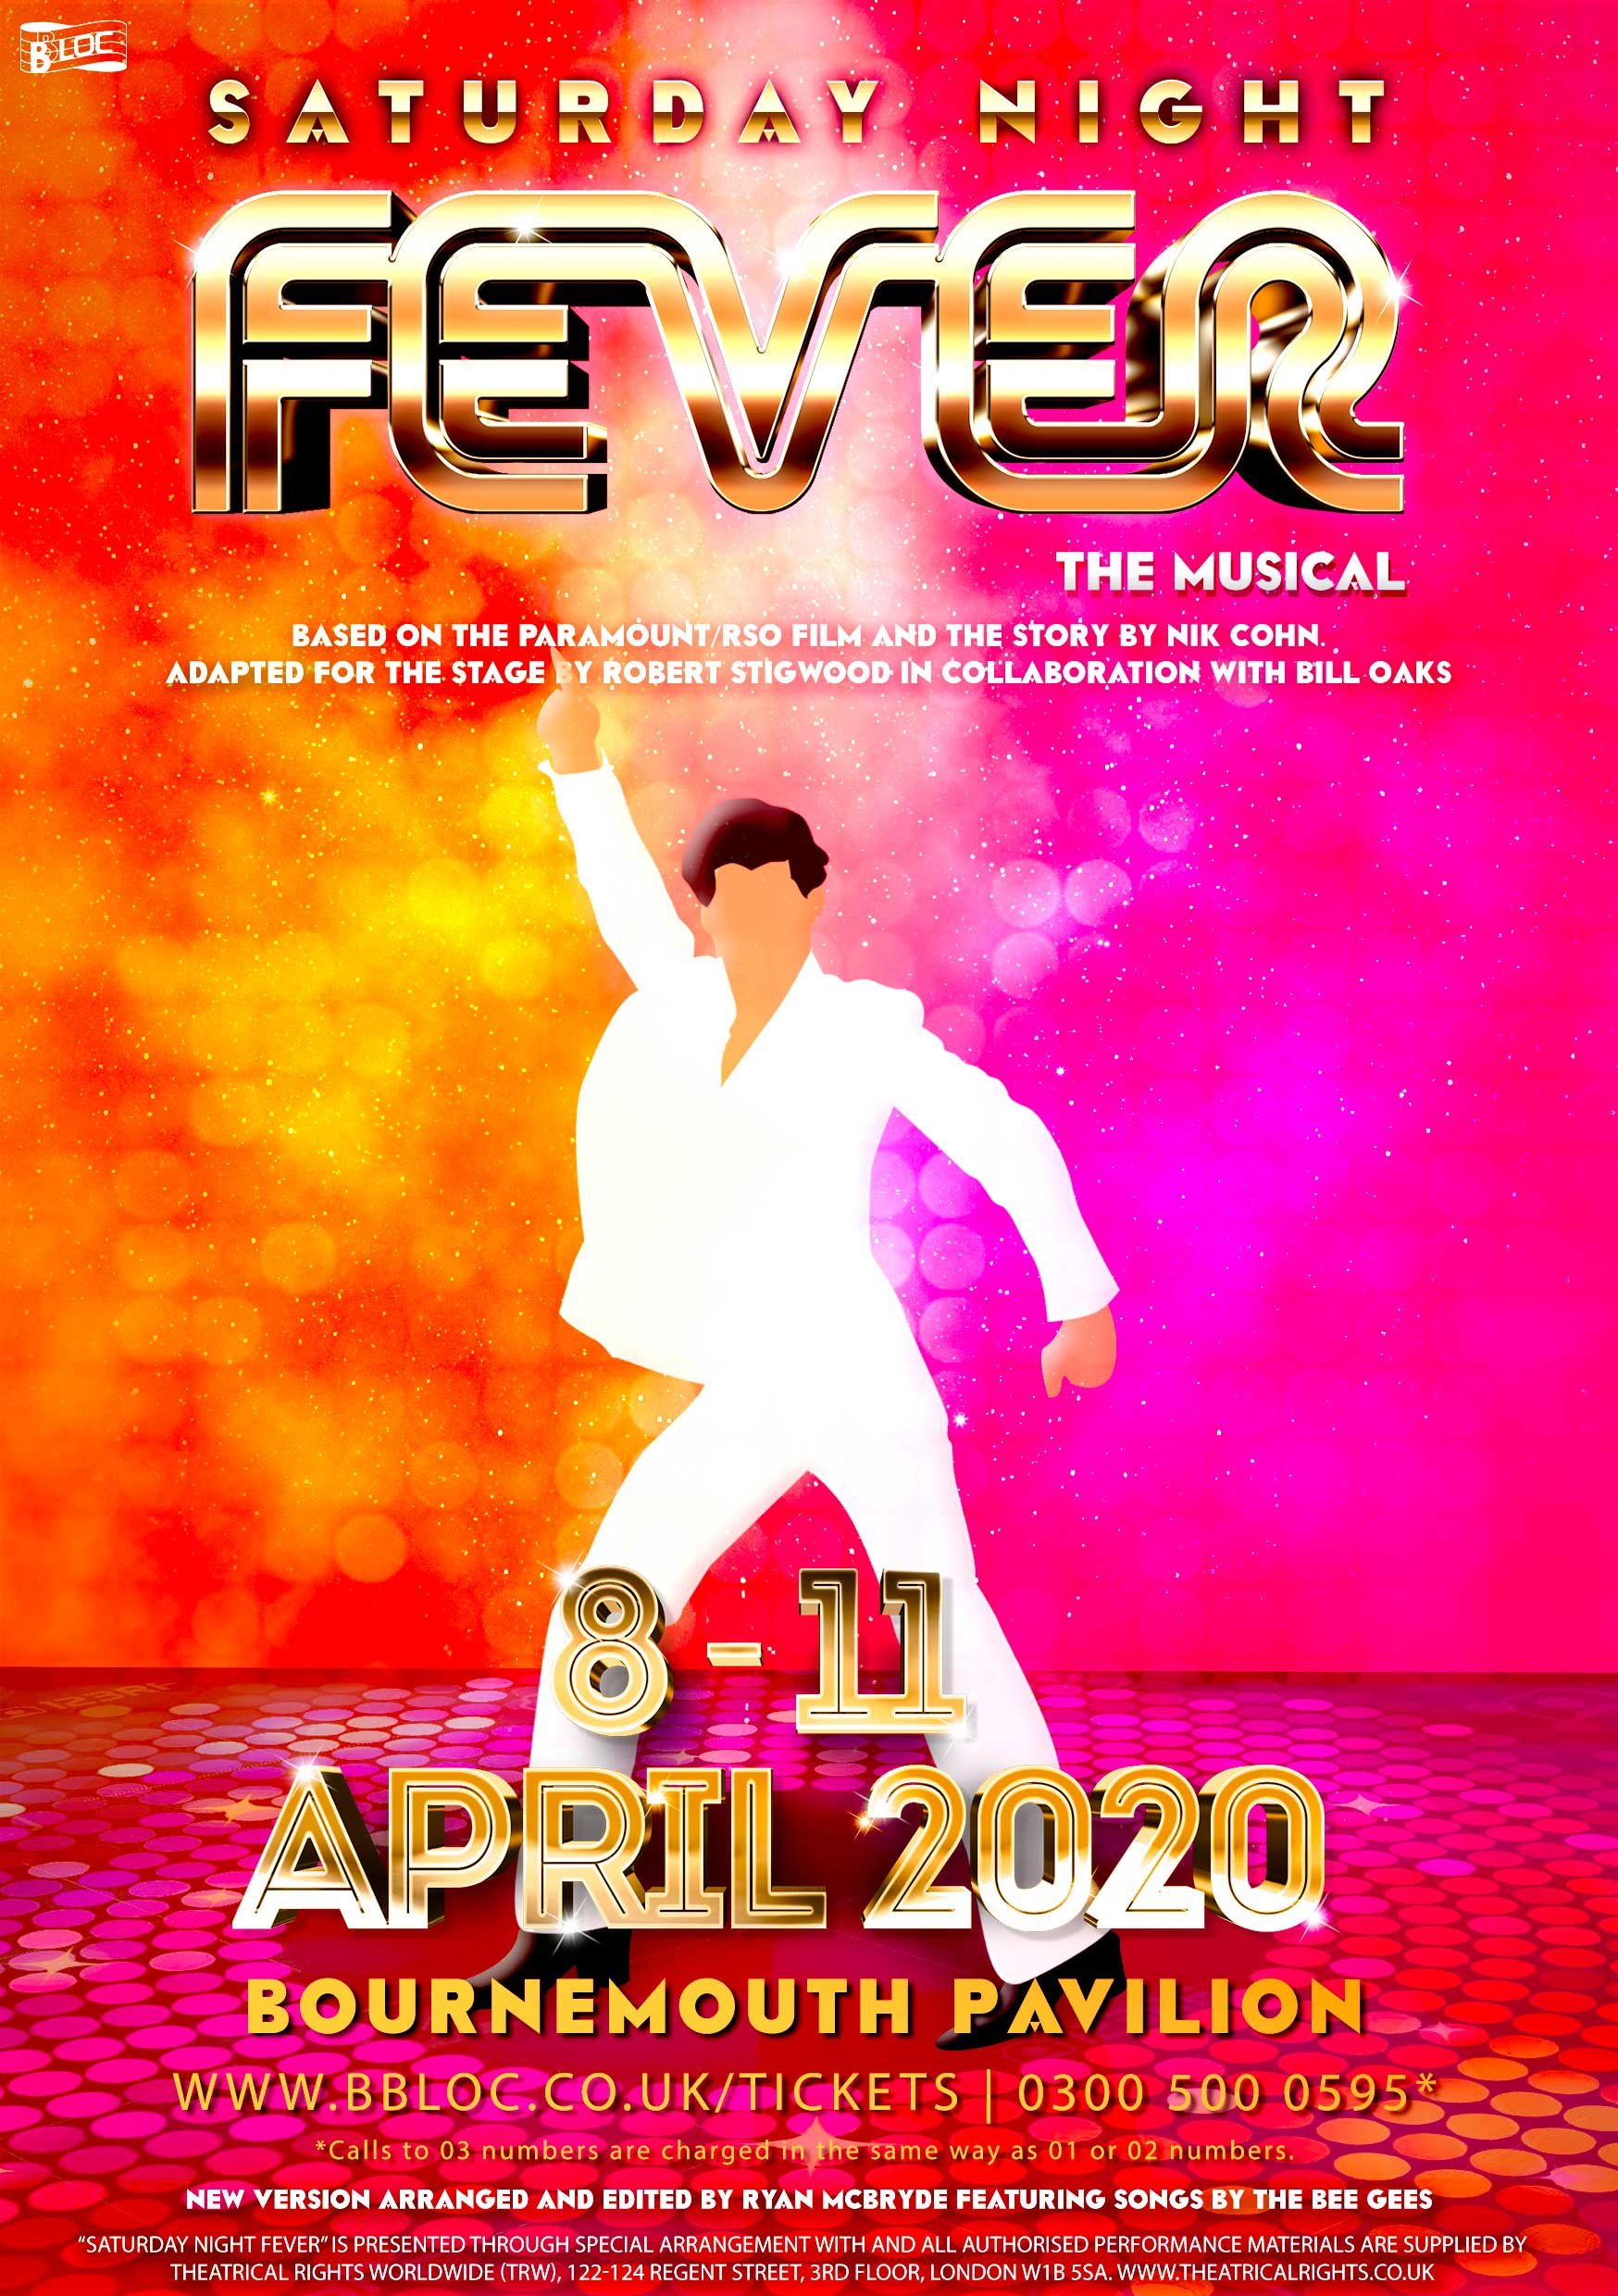 CANCELLED Saturday Night Fever